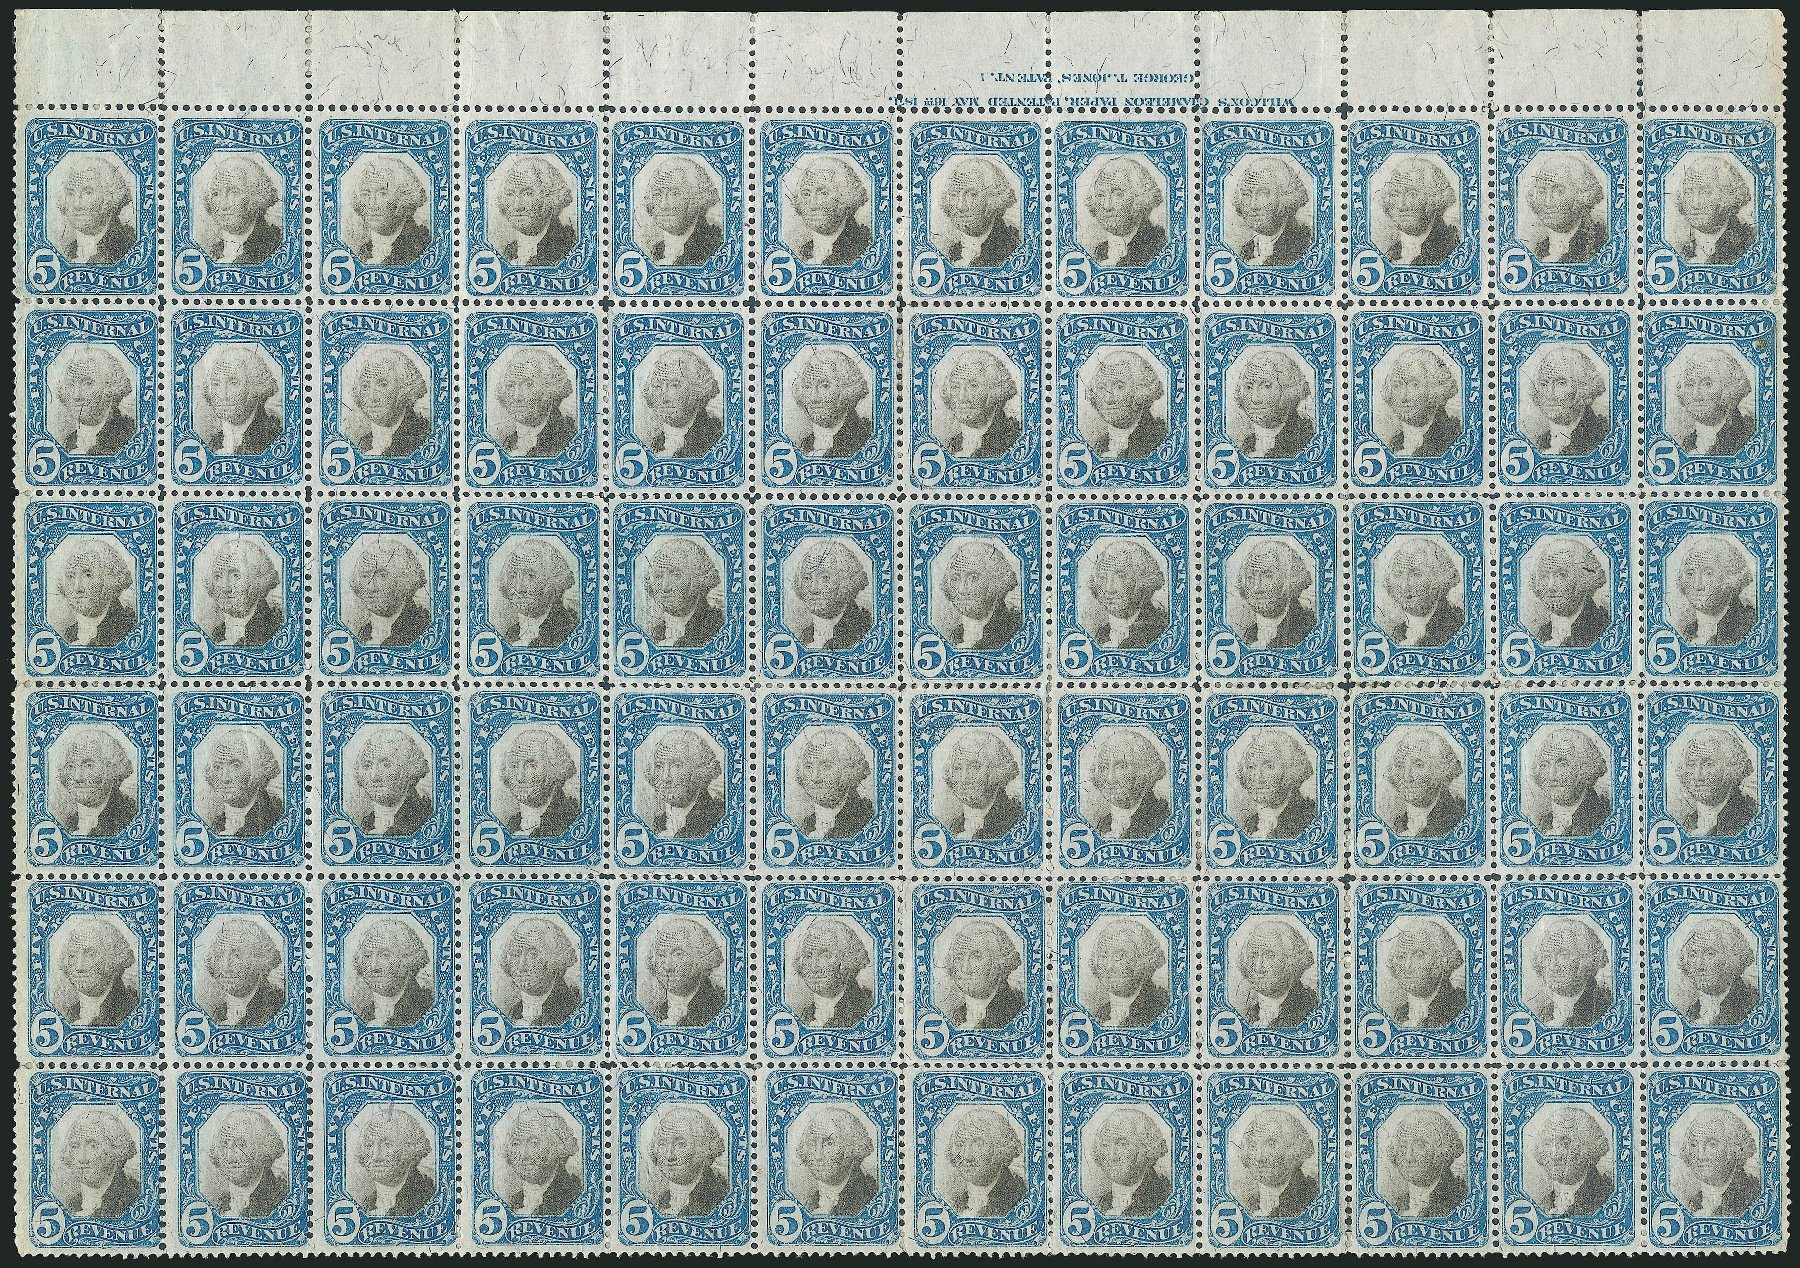 US Stamps Value Scott Cat. #R107 - 1871 5c Revenue Documentary . Robert Siegel Auction Galleries, Dec 2014, Sale 1089, Lot 493